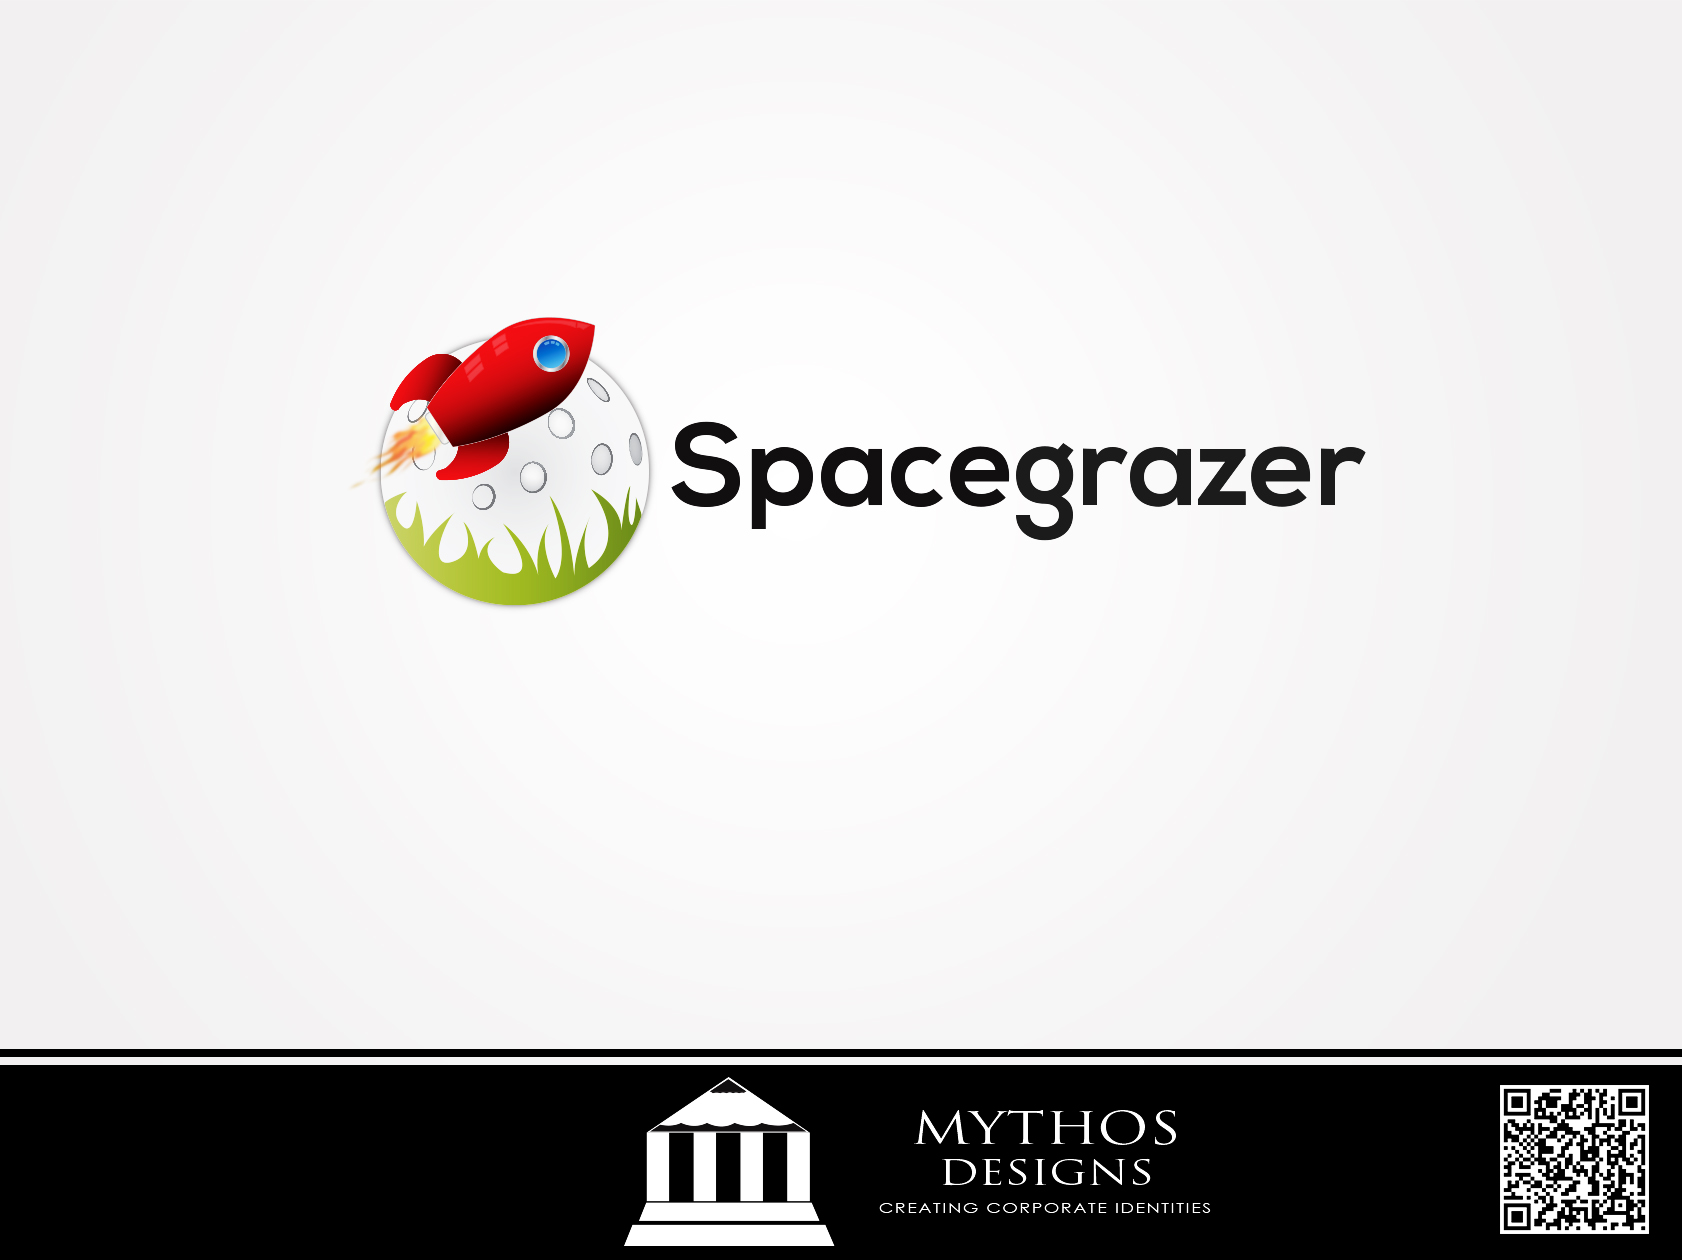 Logo Design by Mythos Designs - Entry No. 105 in the Logo Design Contest Fun Logo Design for Spacegrazer.